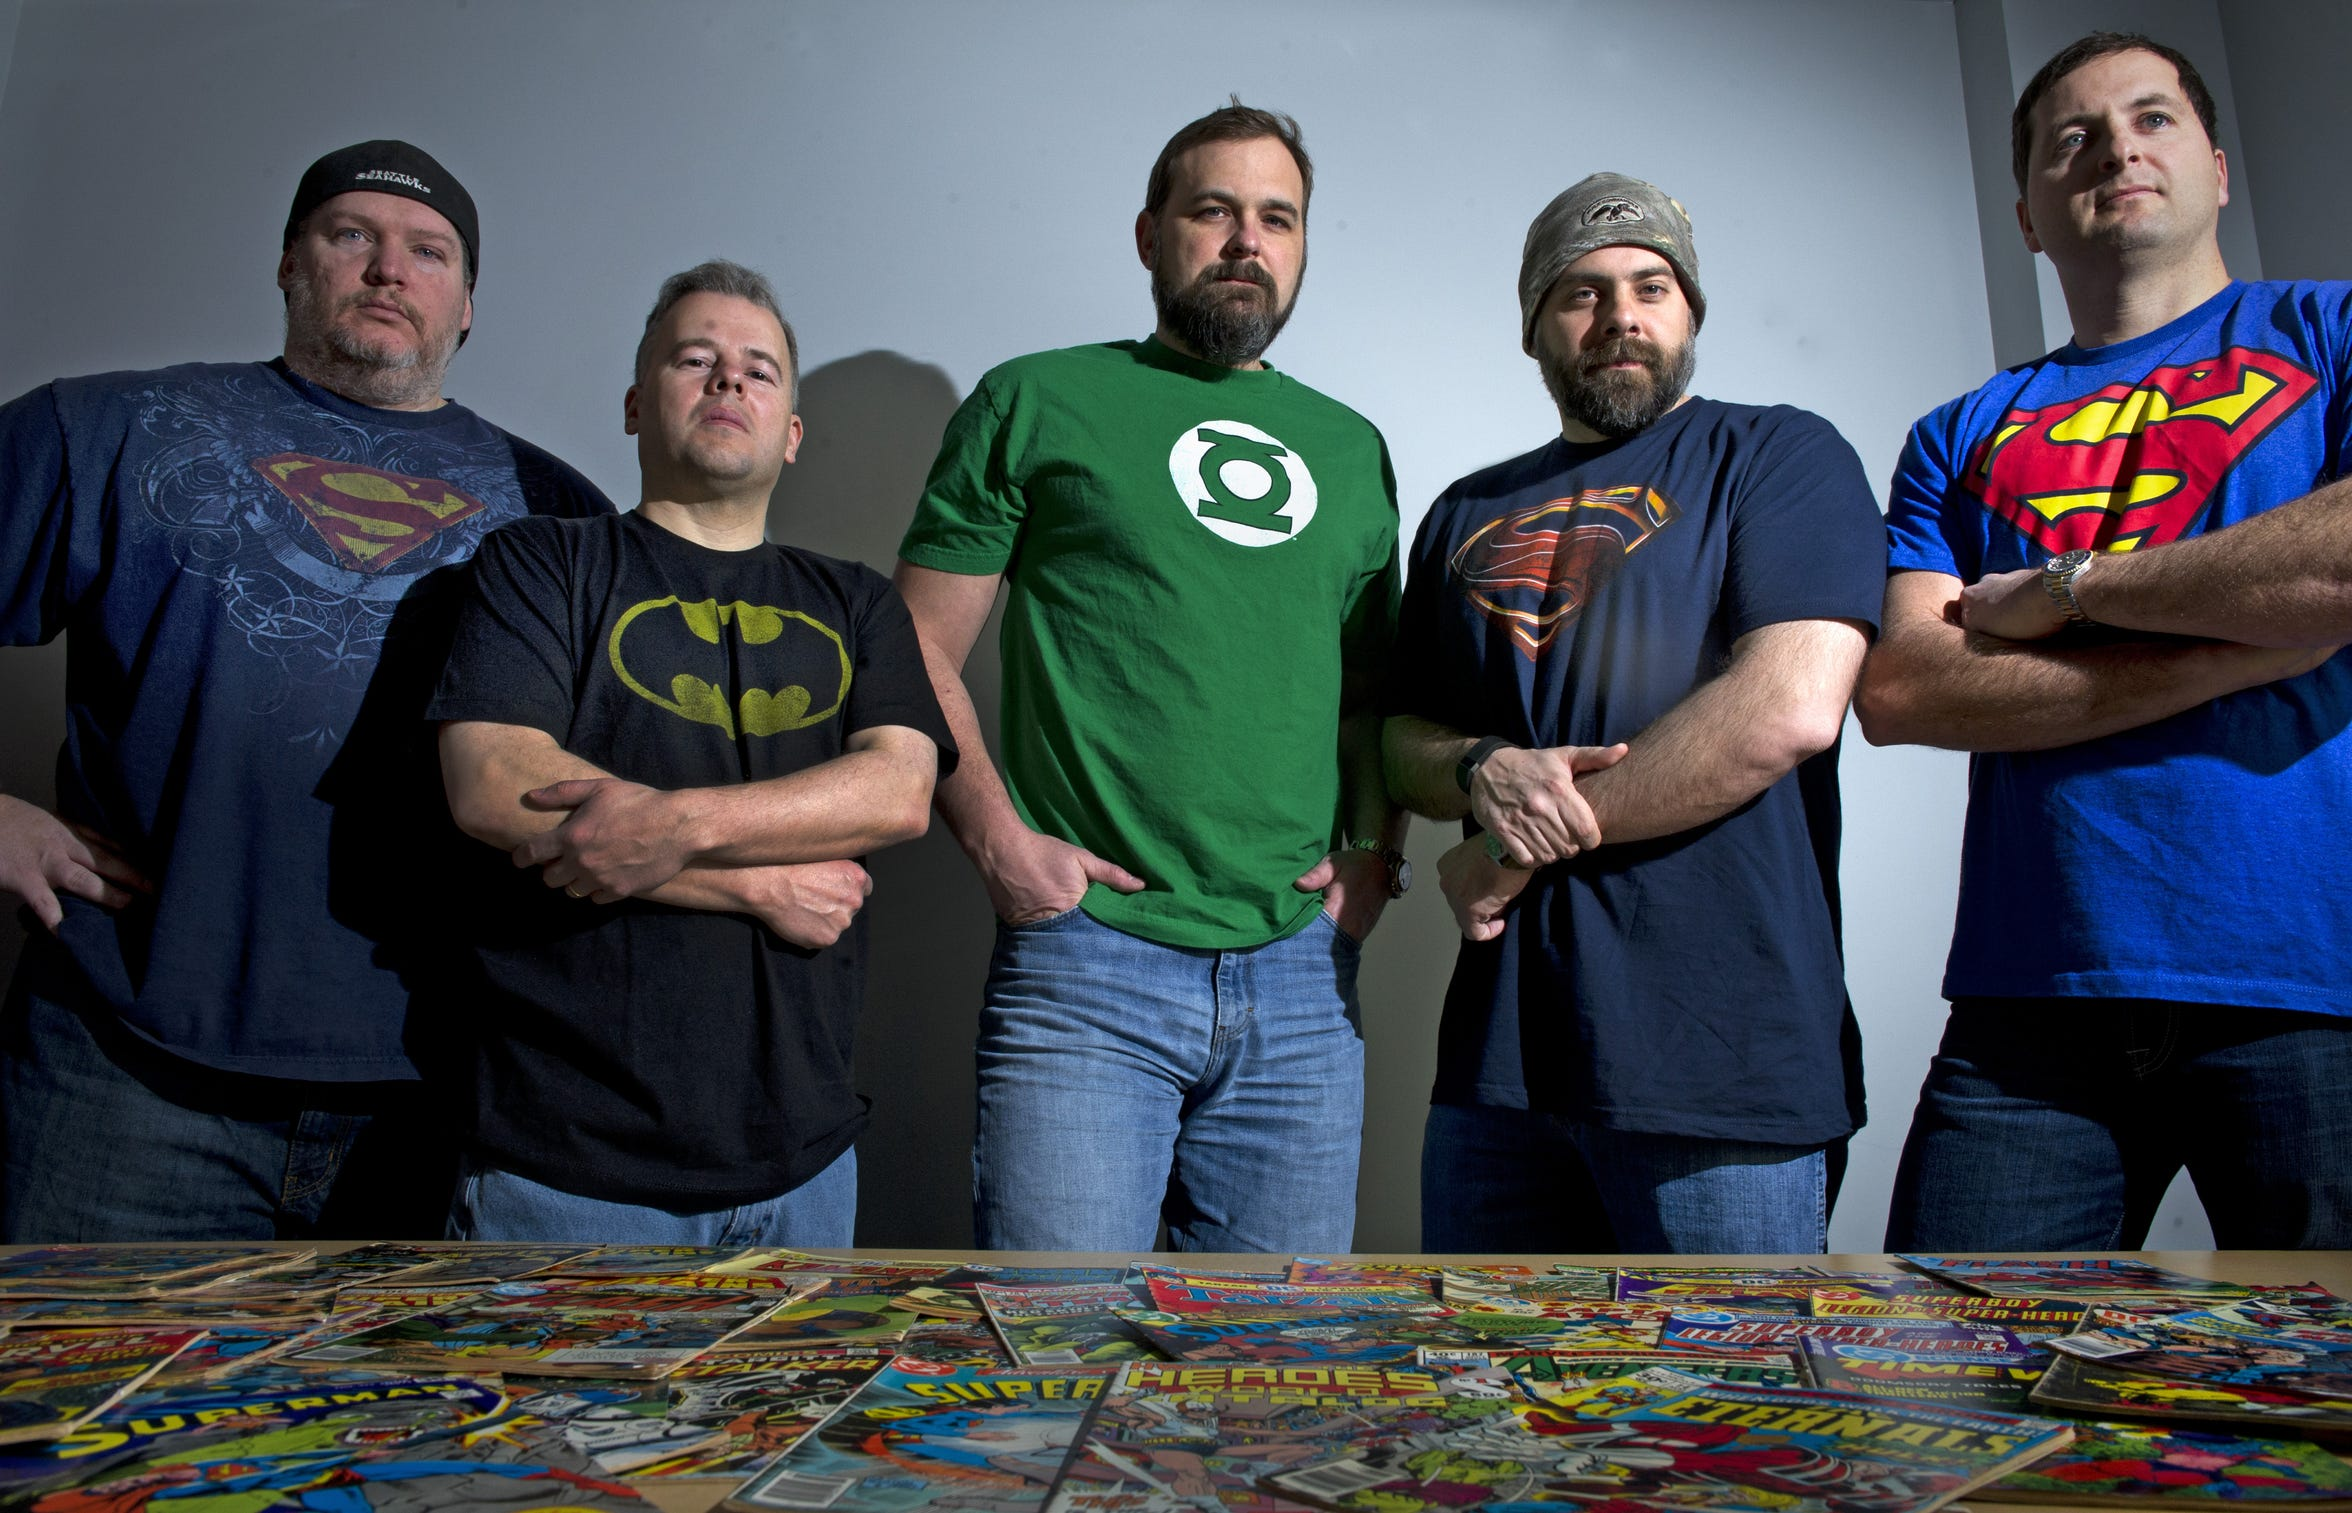 The Comicbook.com leaders, from left, are Noah Stanley, CPO and COO; Joe Blackmon, president; Shannon Terry, CEO; Cory Lovelace, CTO; and Andy Johnson, CFO.